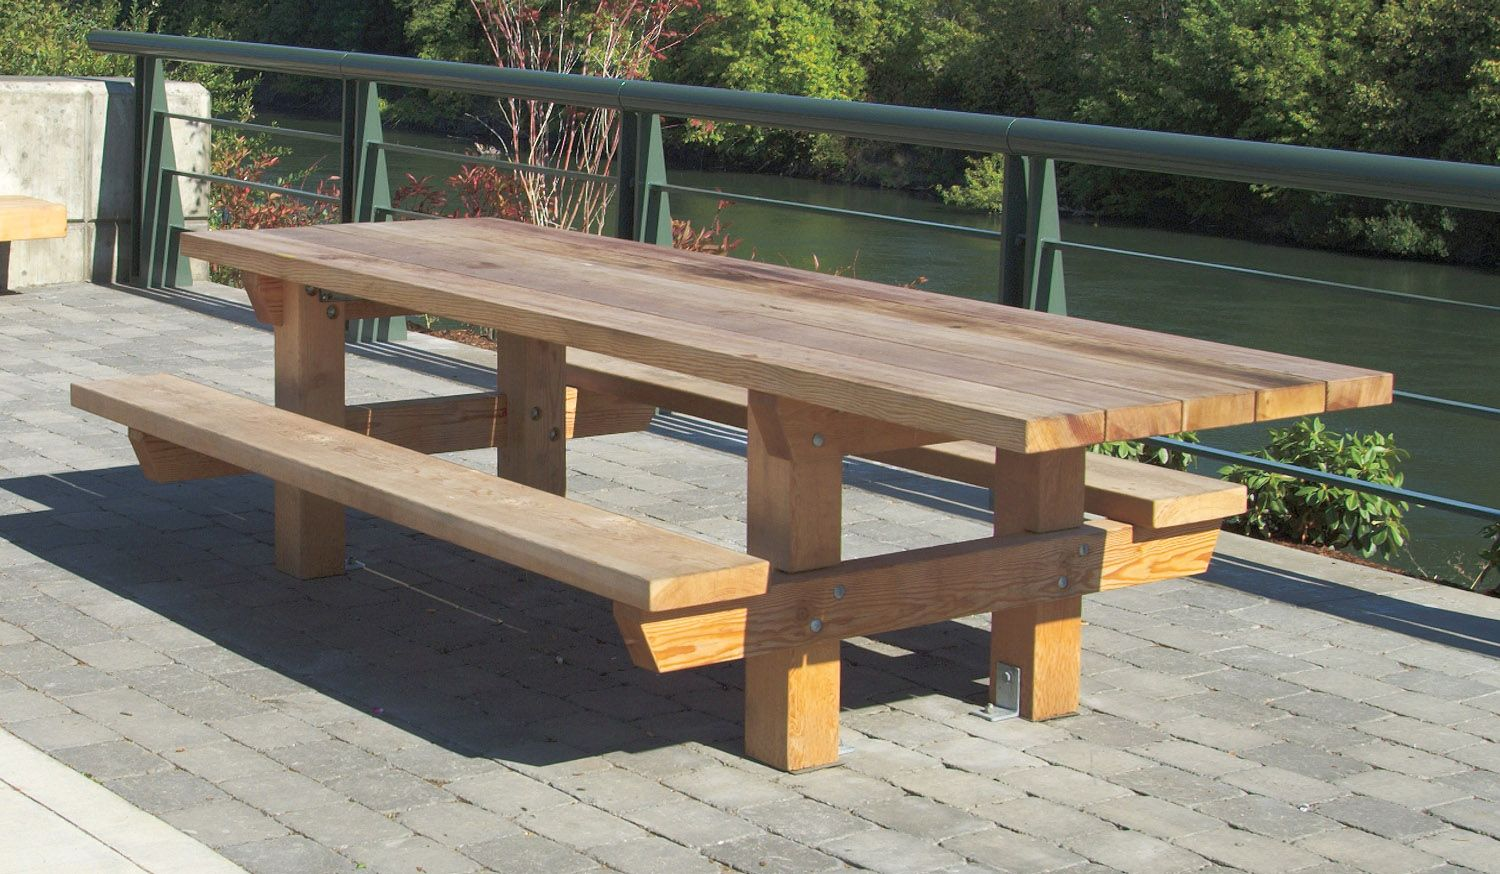 Picnic Table Designs 2167 Accessible Picnic Table With